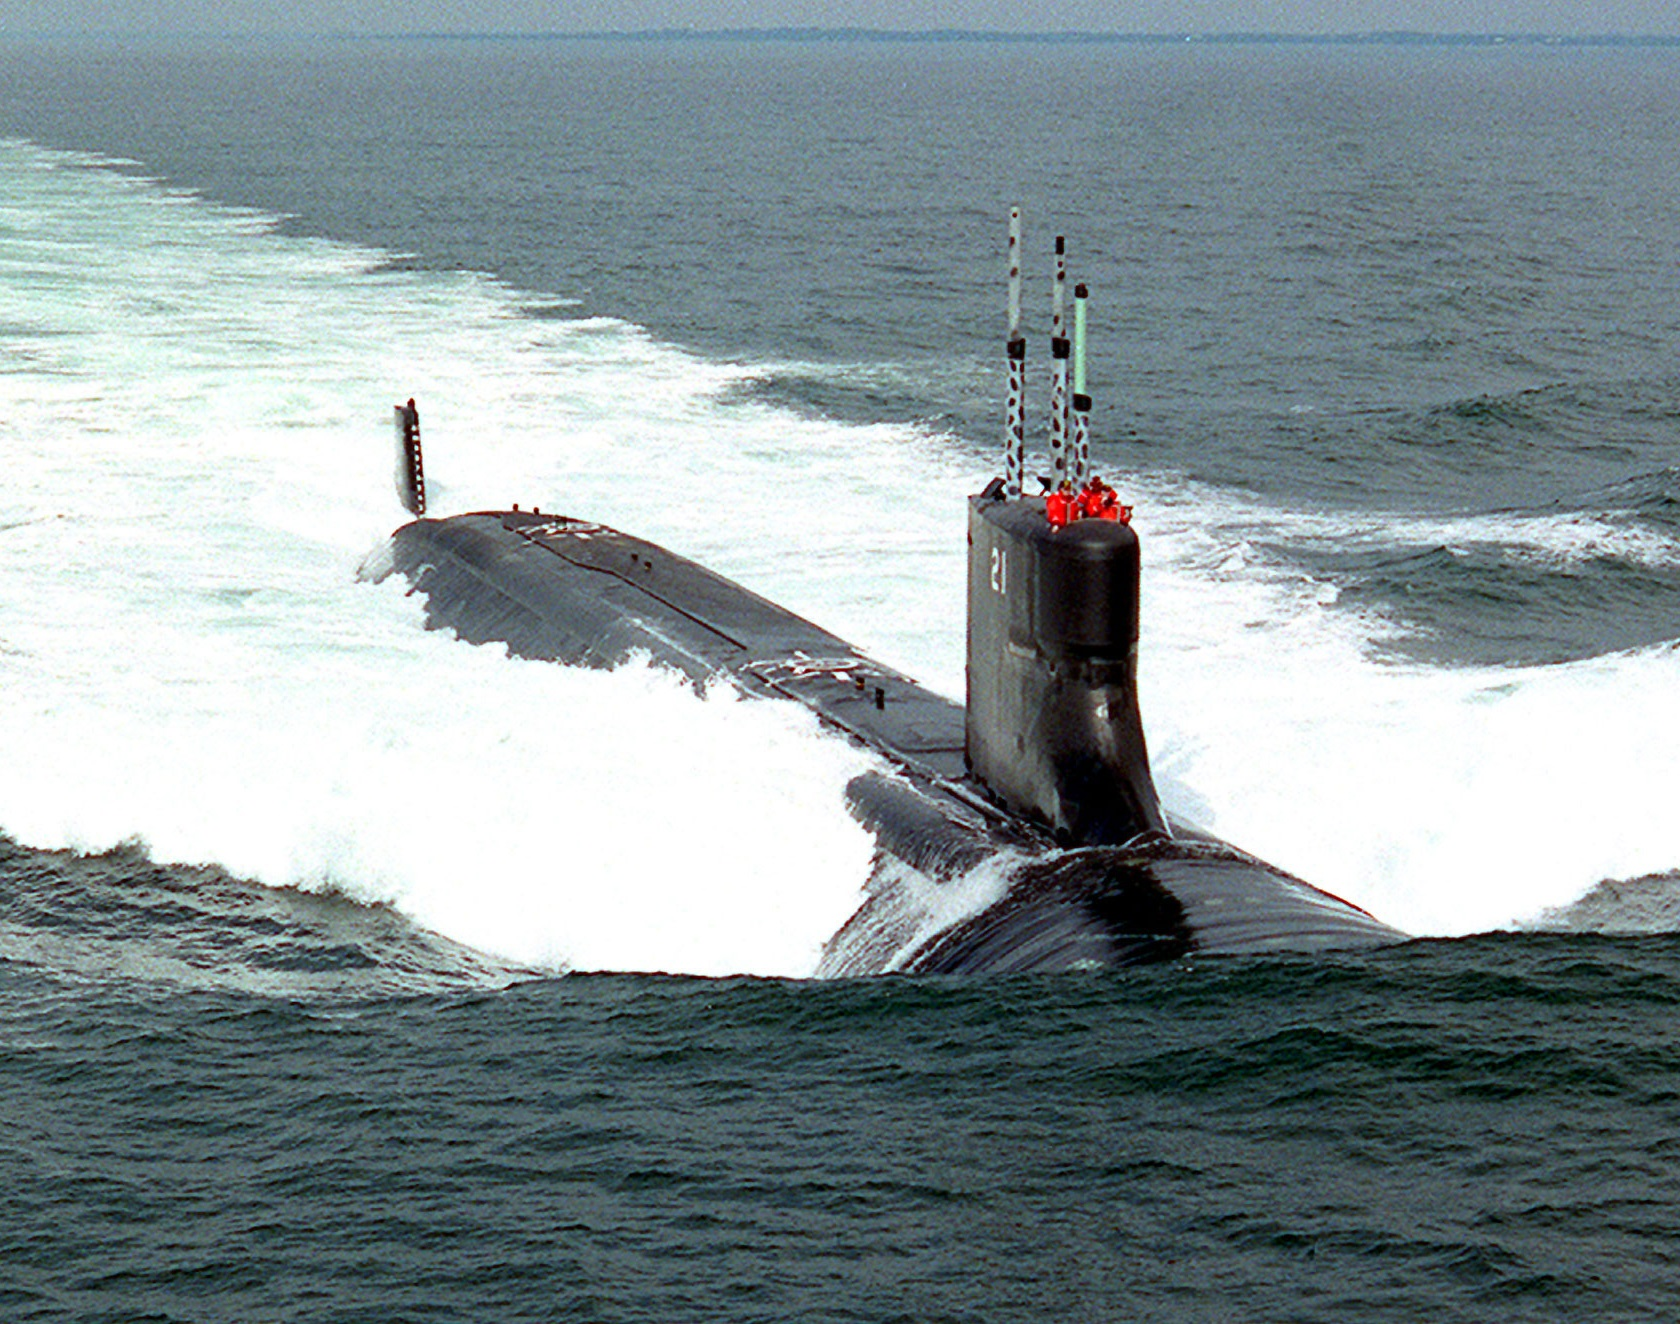 Seawolf: The 'Secret' Submarines the U.S. Navy Doesn't Want You to